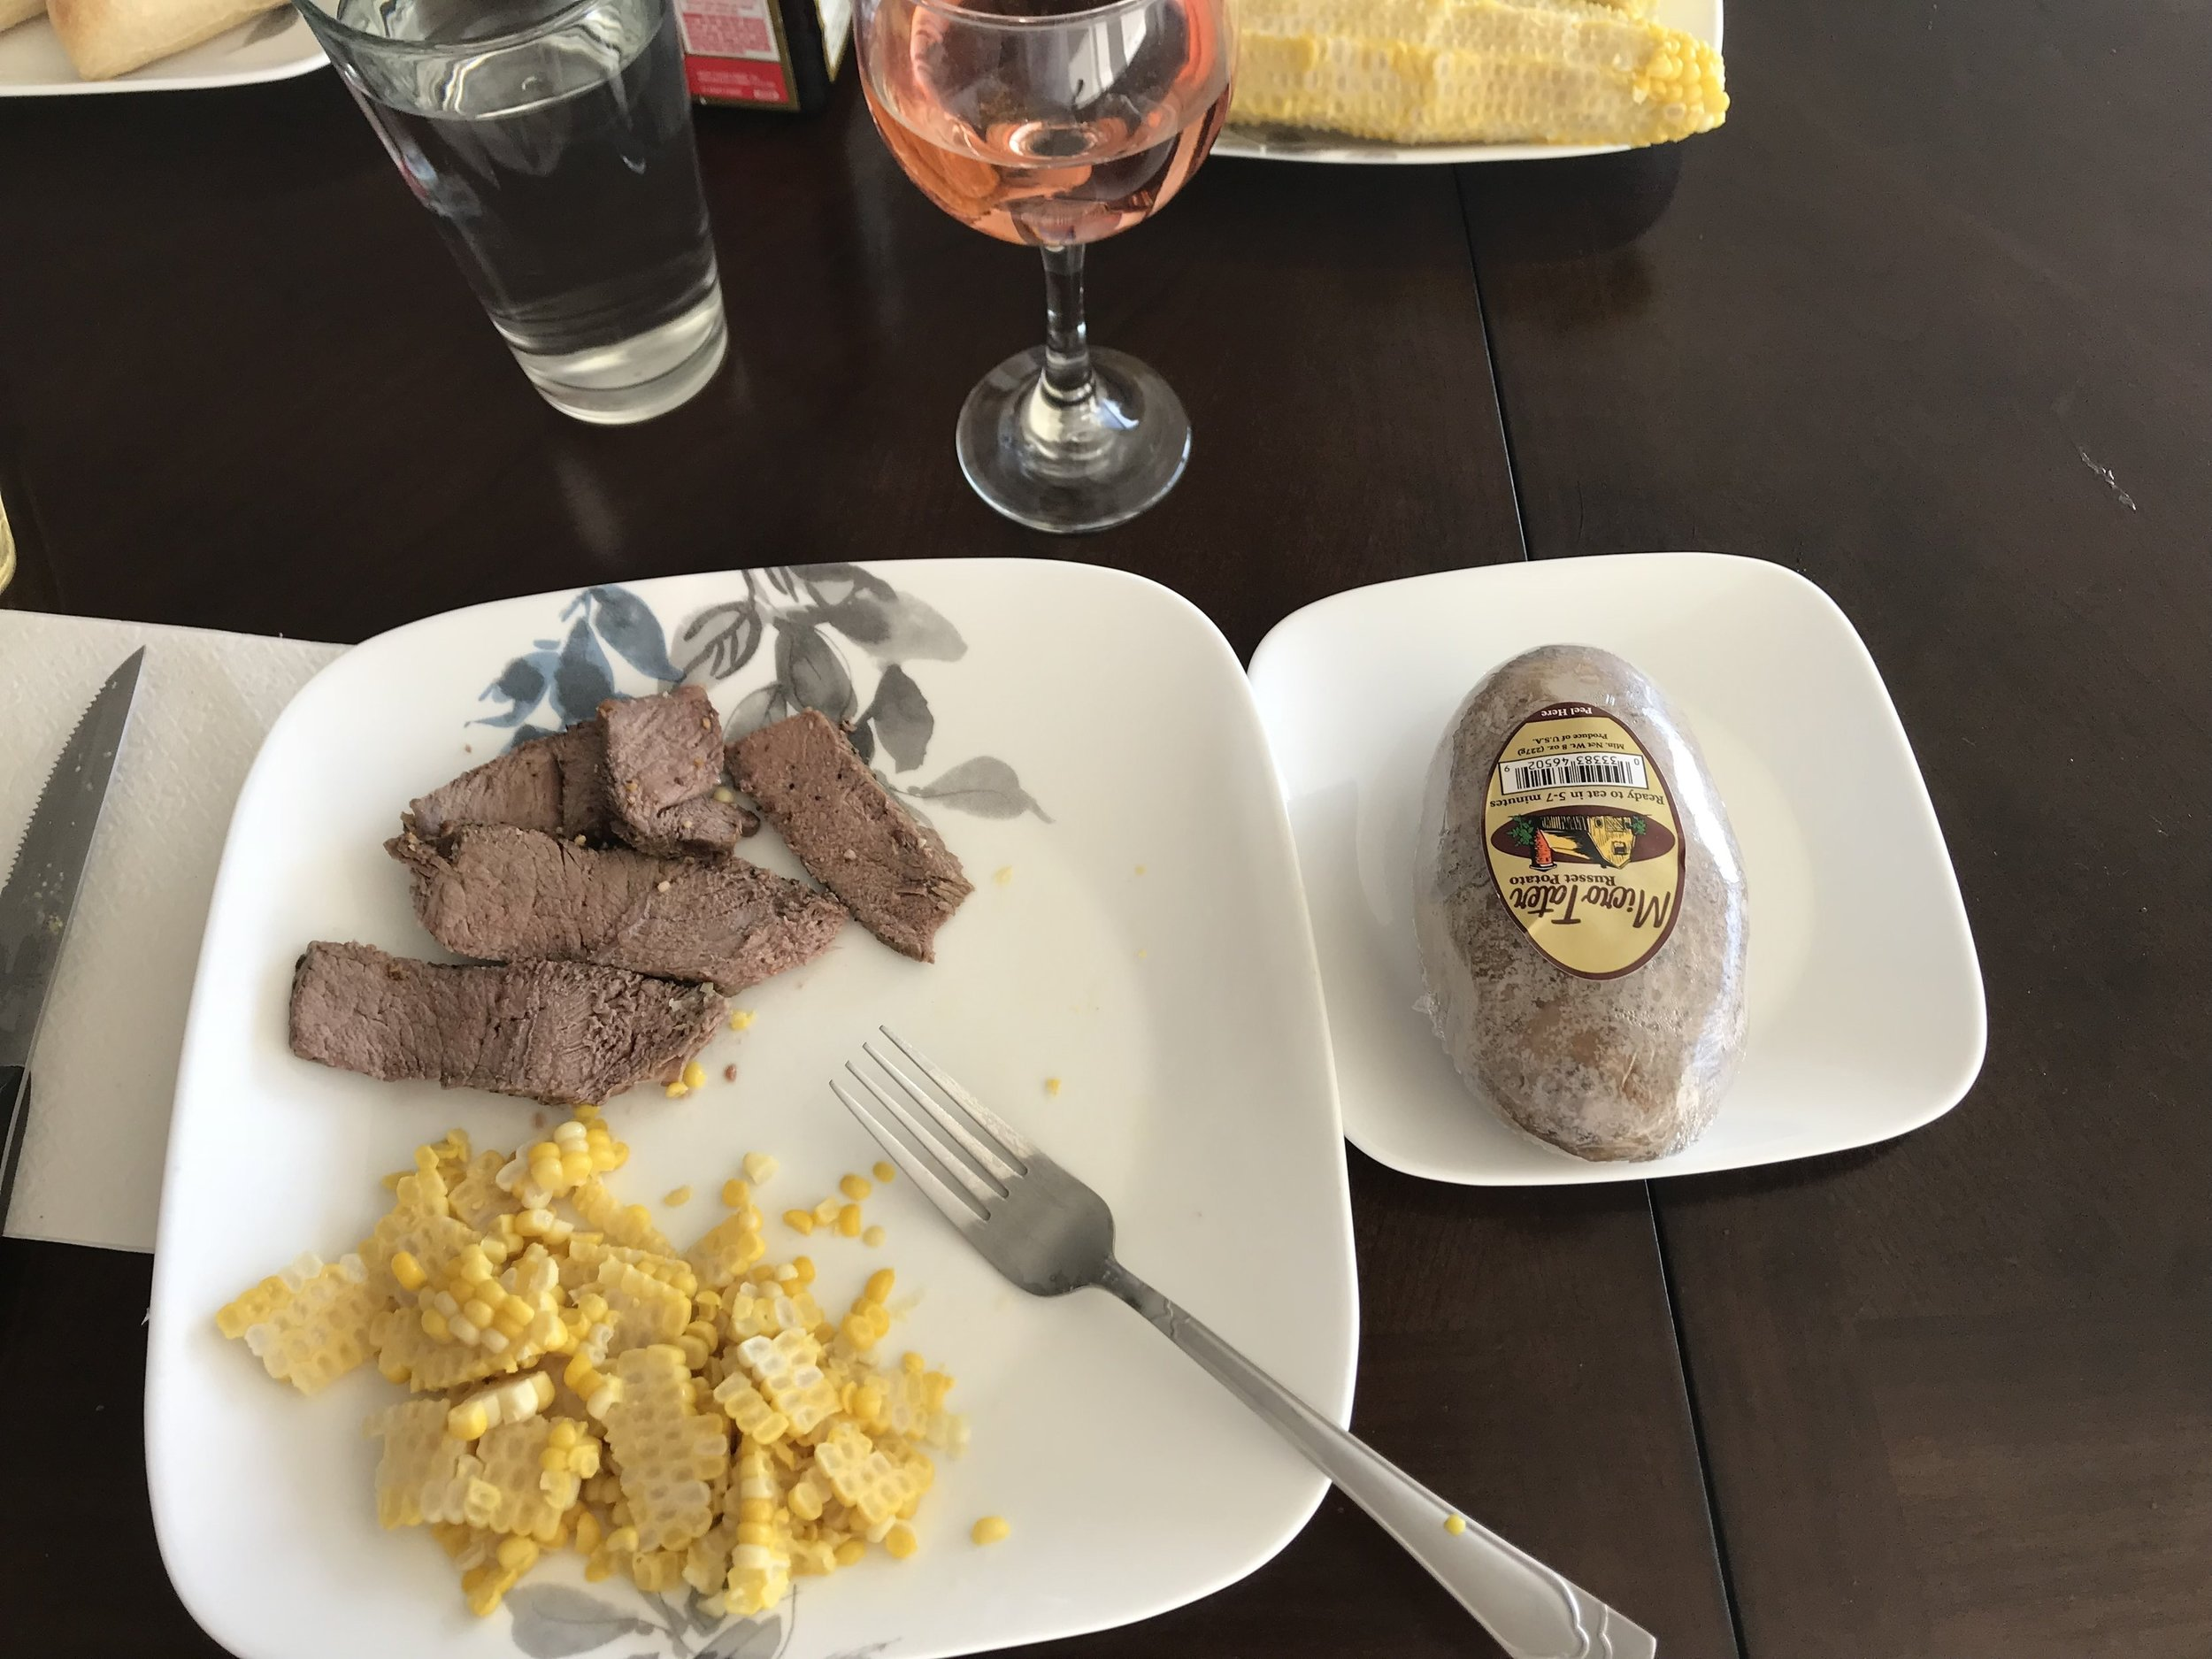 DINNER - Roast Sirloin Beef, Corn on the Cob, baked Potato (1/2 half), 1/2 a French Roll, and a glass of Wine. Ended the evening with a slice of Key Lime Pie.